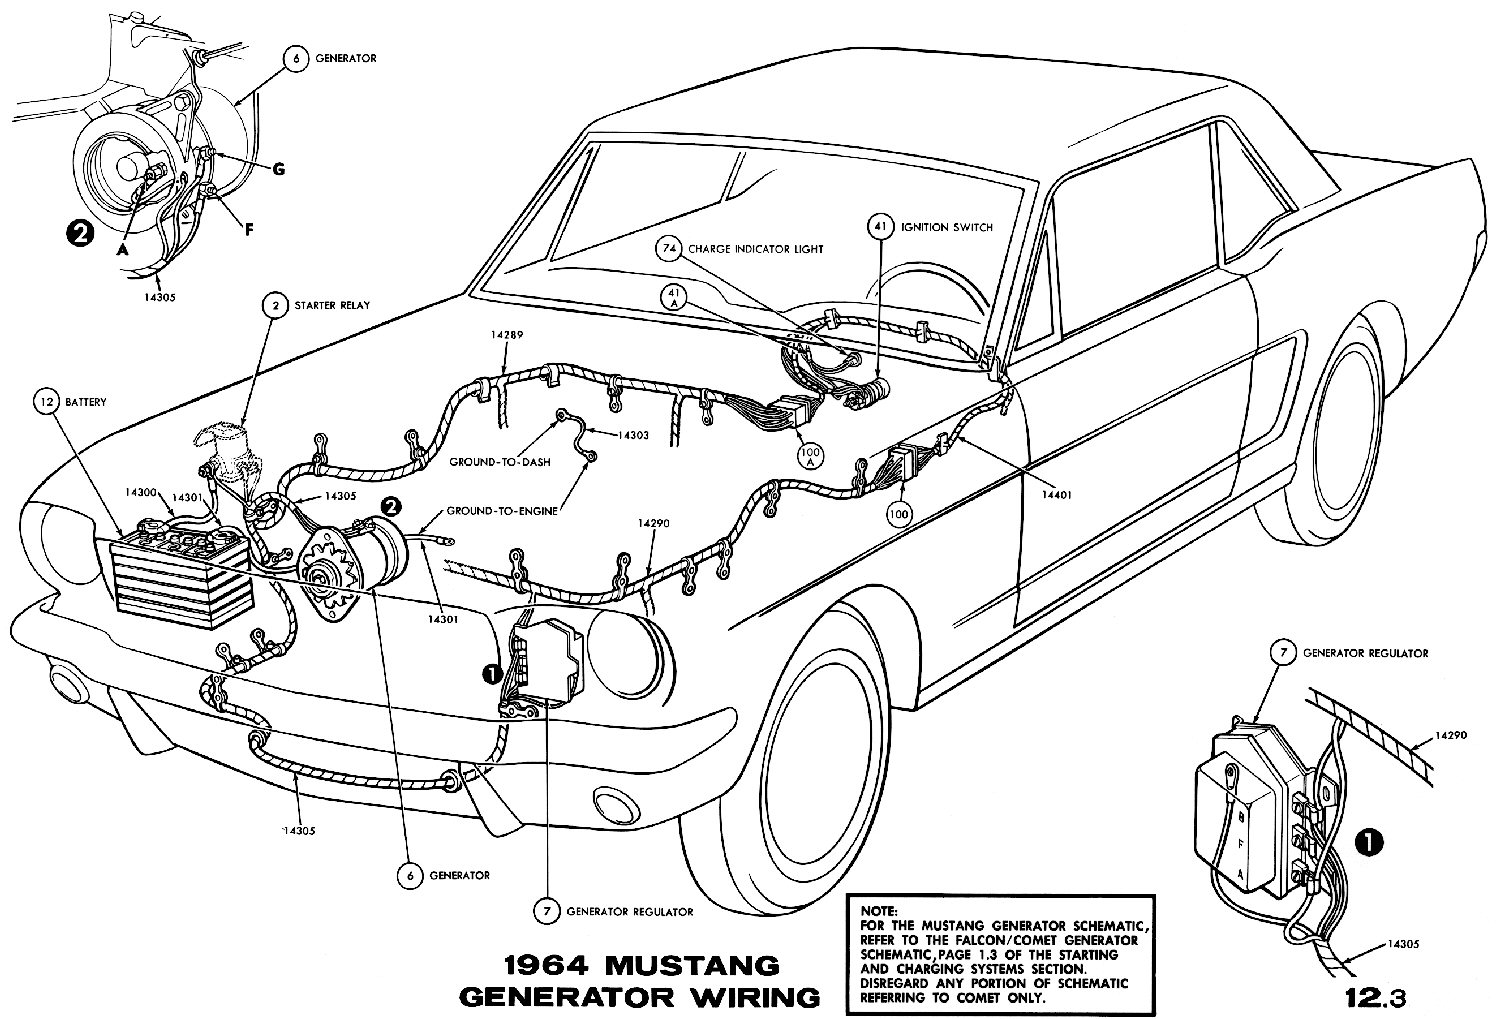 1964 Mustang Wiring Diagrams Average Joe Restoration Engine Diagram For Generator Sm1964f Pictorial Or Schematic